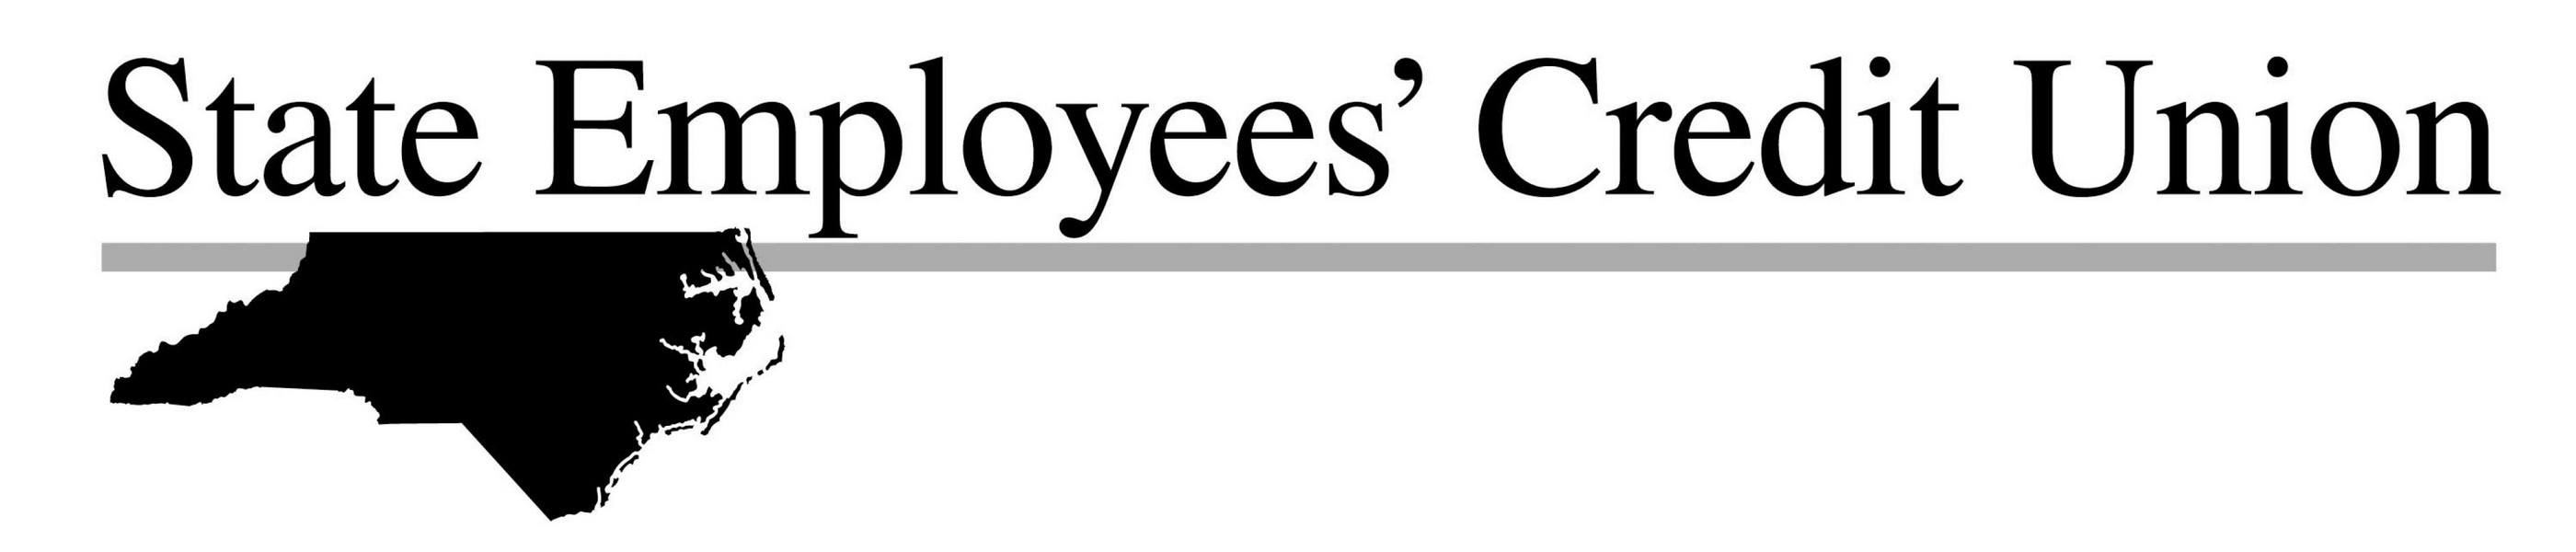 state employees credit union logo